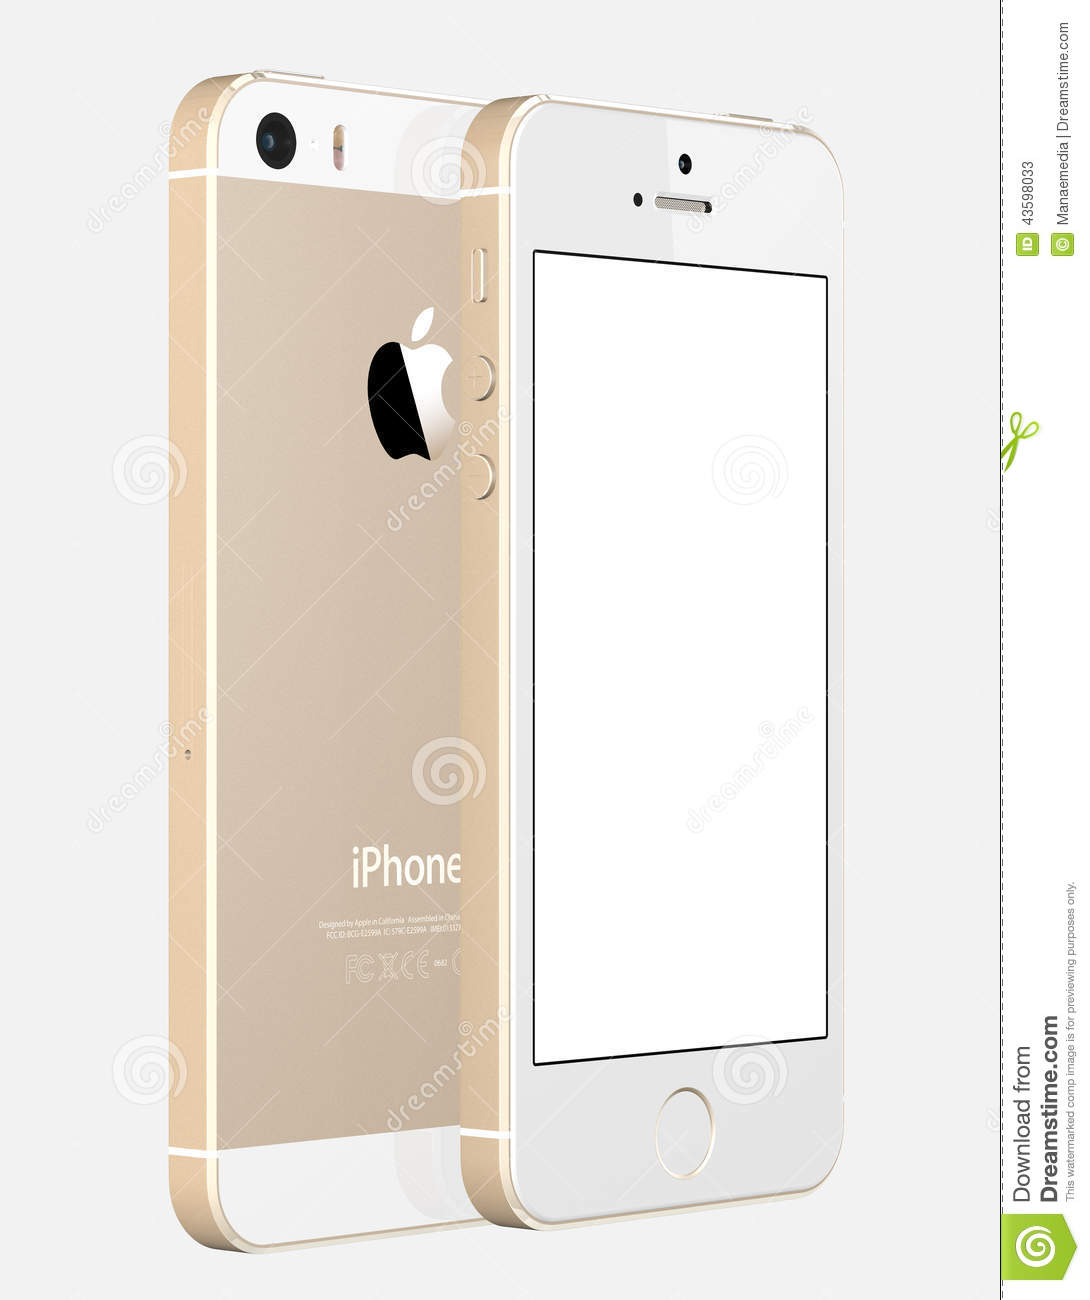 Apple IPhone 5s Displaying A Blank White Screen. Editorial